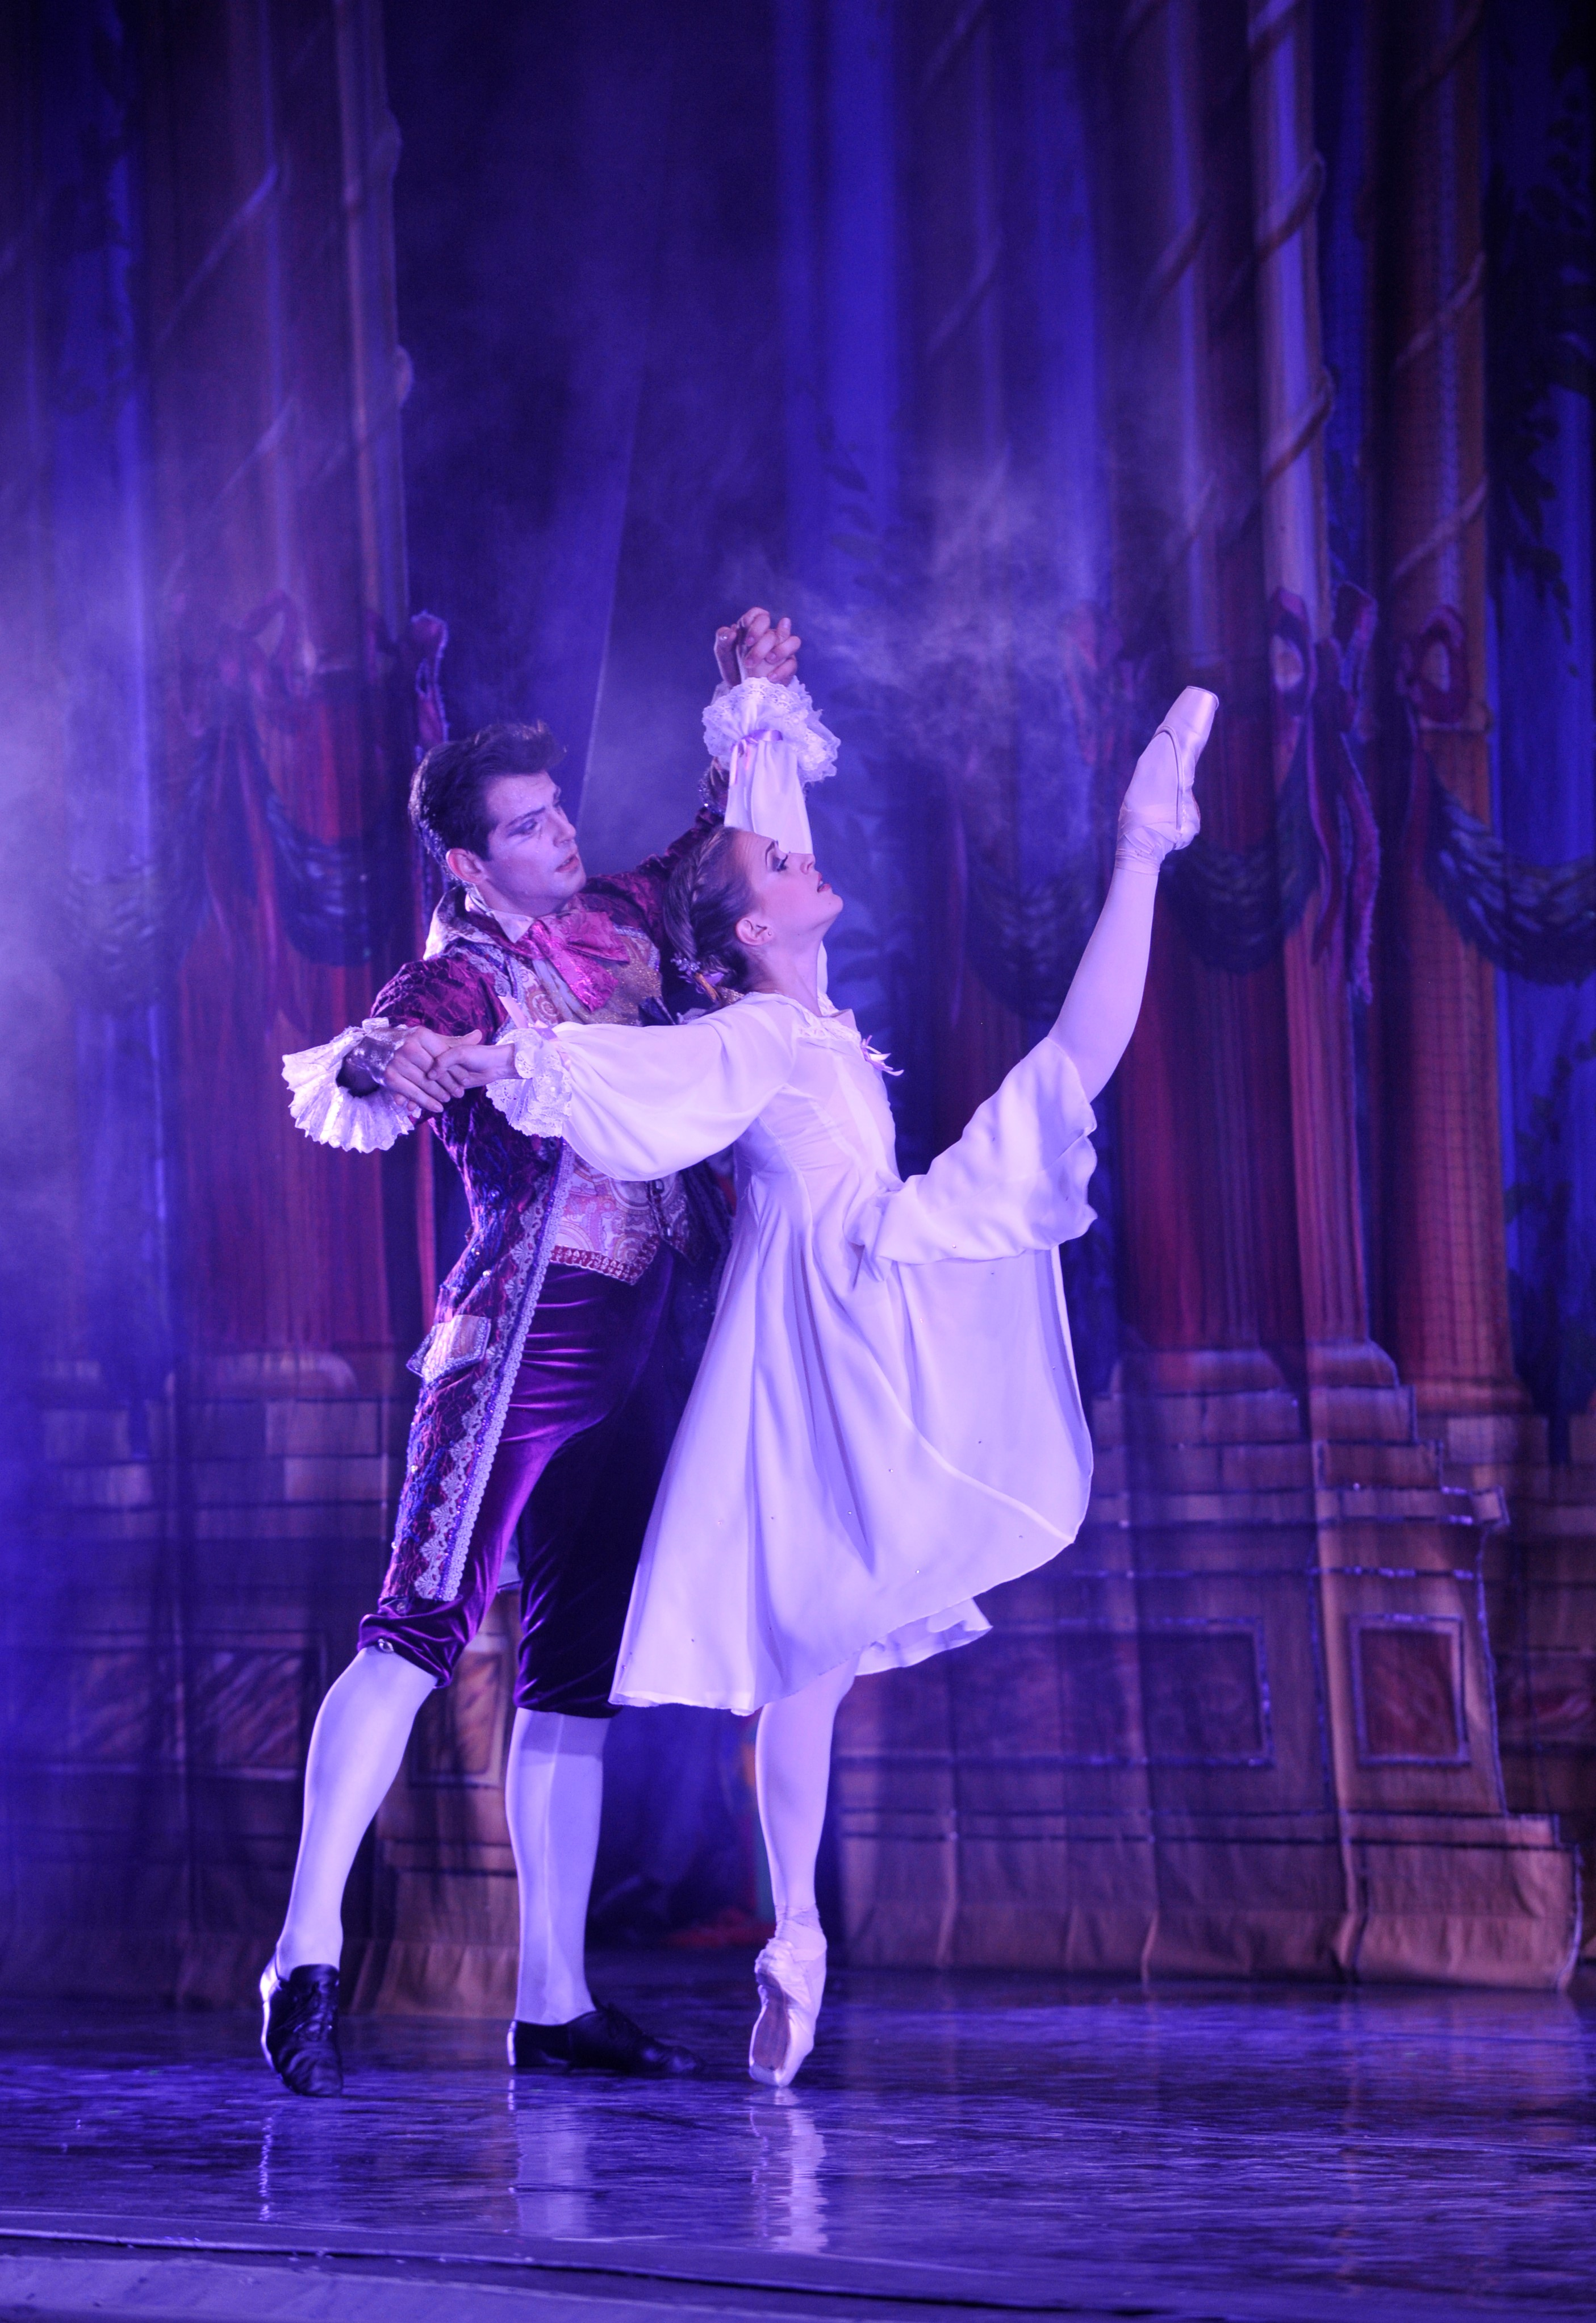 Moscow Ballet's Great Russian Nutcracker - Masha and Uncle Drosselmeyer